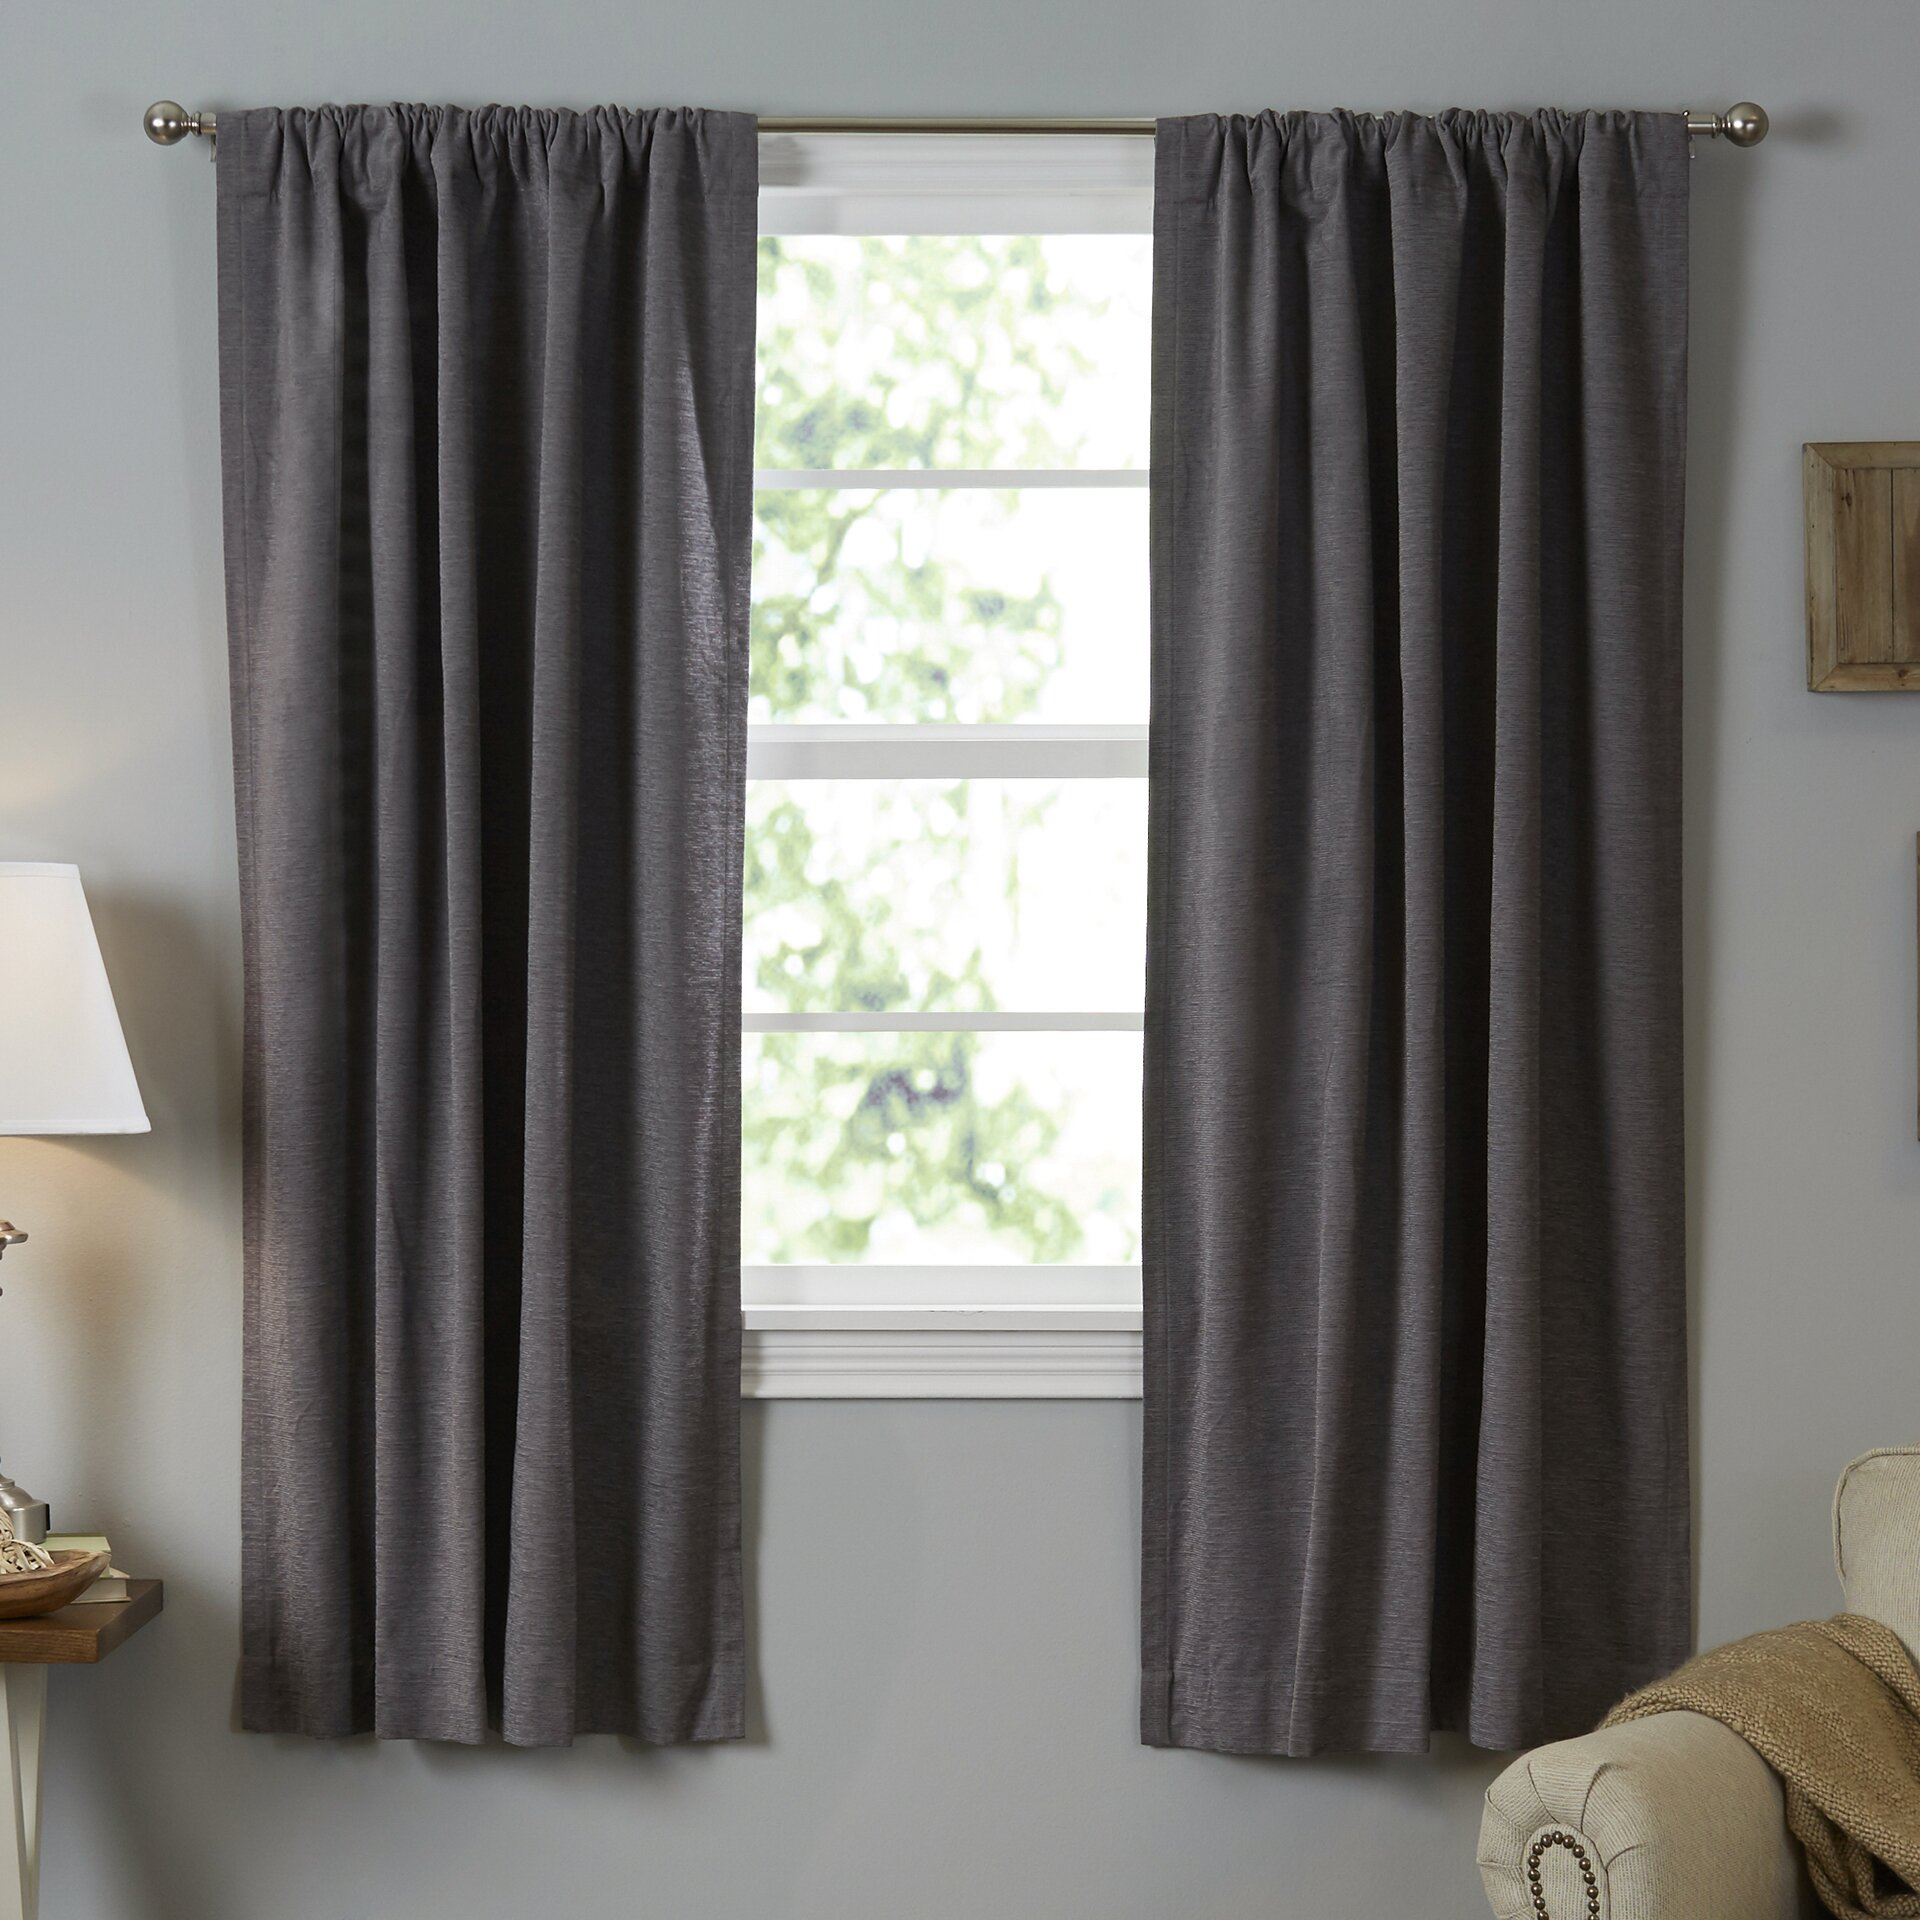 Beautyrest Room Darkening Blackout Thermal Single Curtain Panel. Beautyrest Room Darkening Blackout Thermal Single Curtain Panel